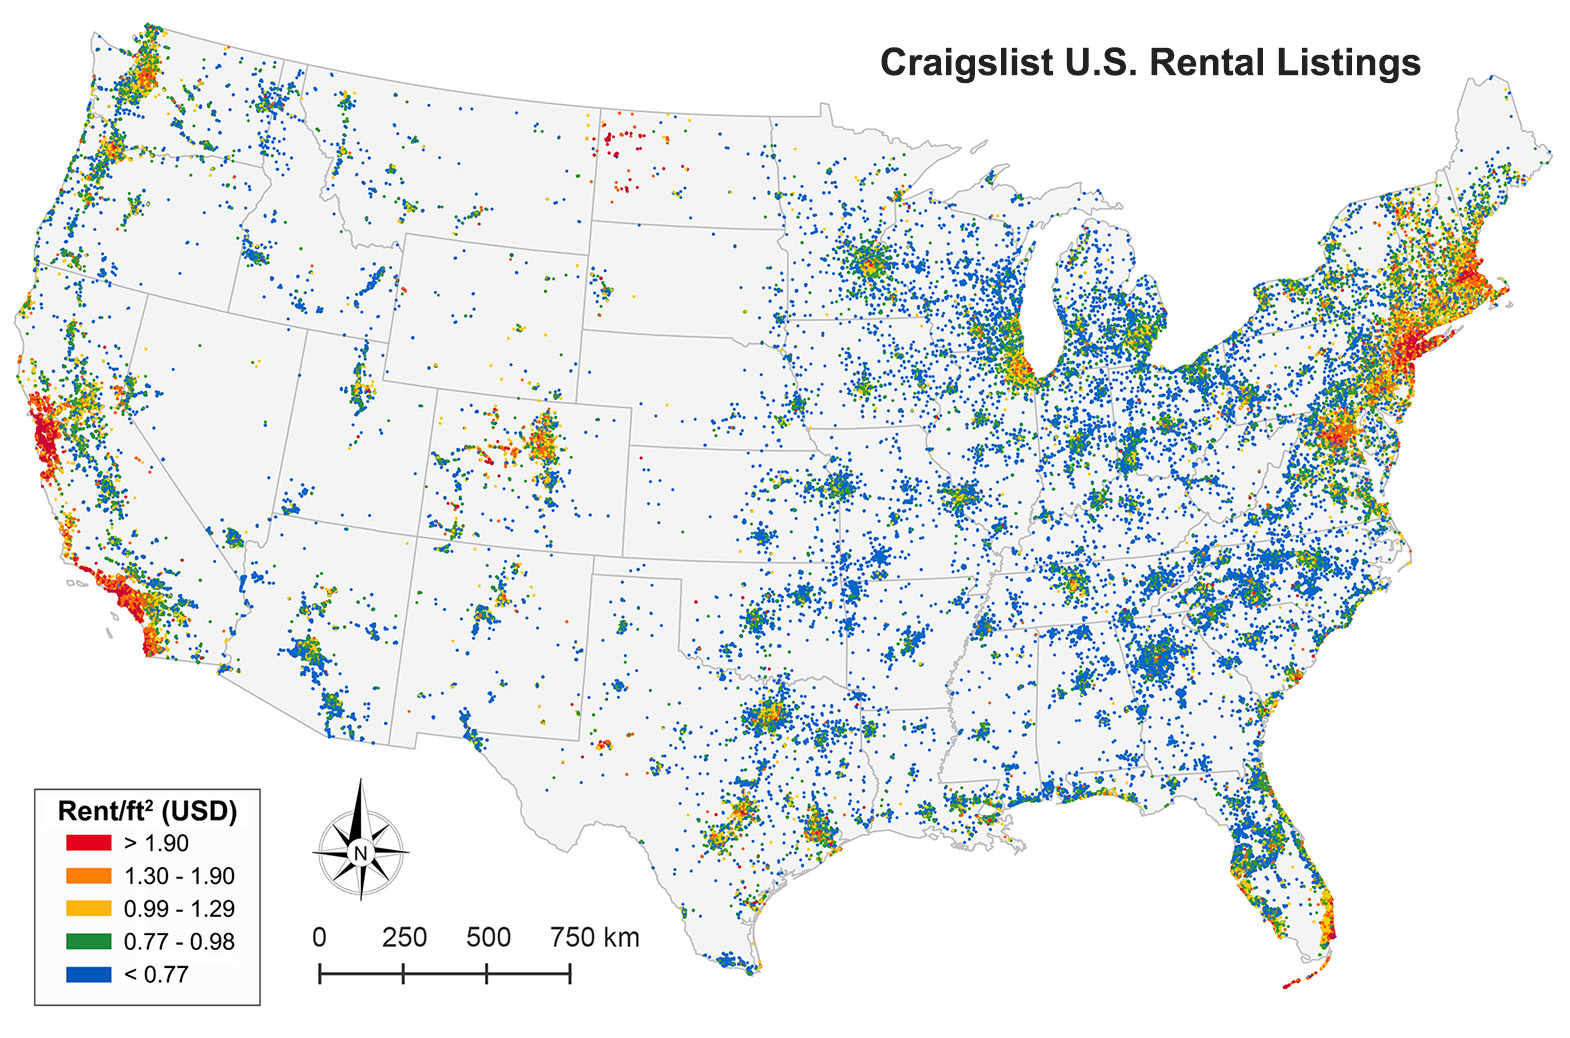 Map Of 1 5 Million Craigslist Rental Listings In The Contiguous Us Divided Into Rent Ft2 Quintiles Summer 2014